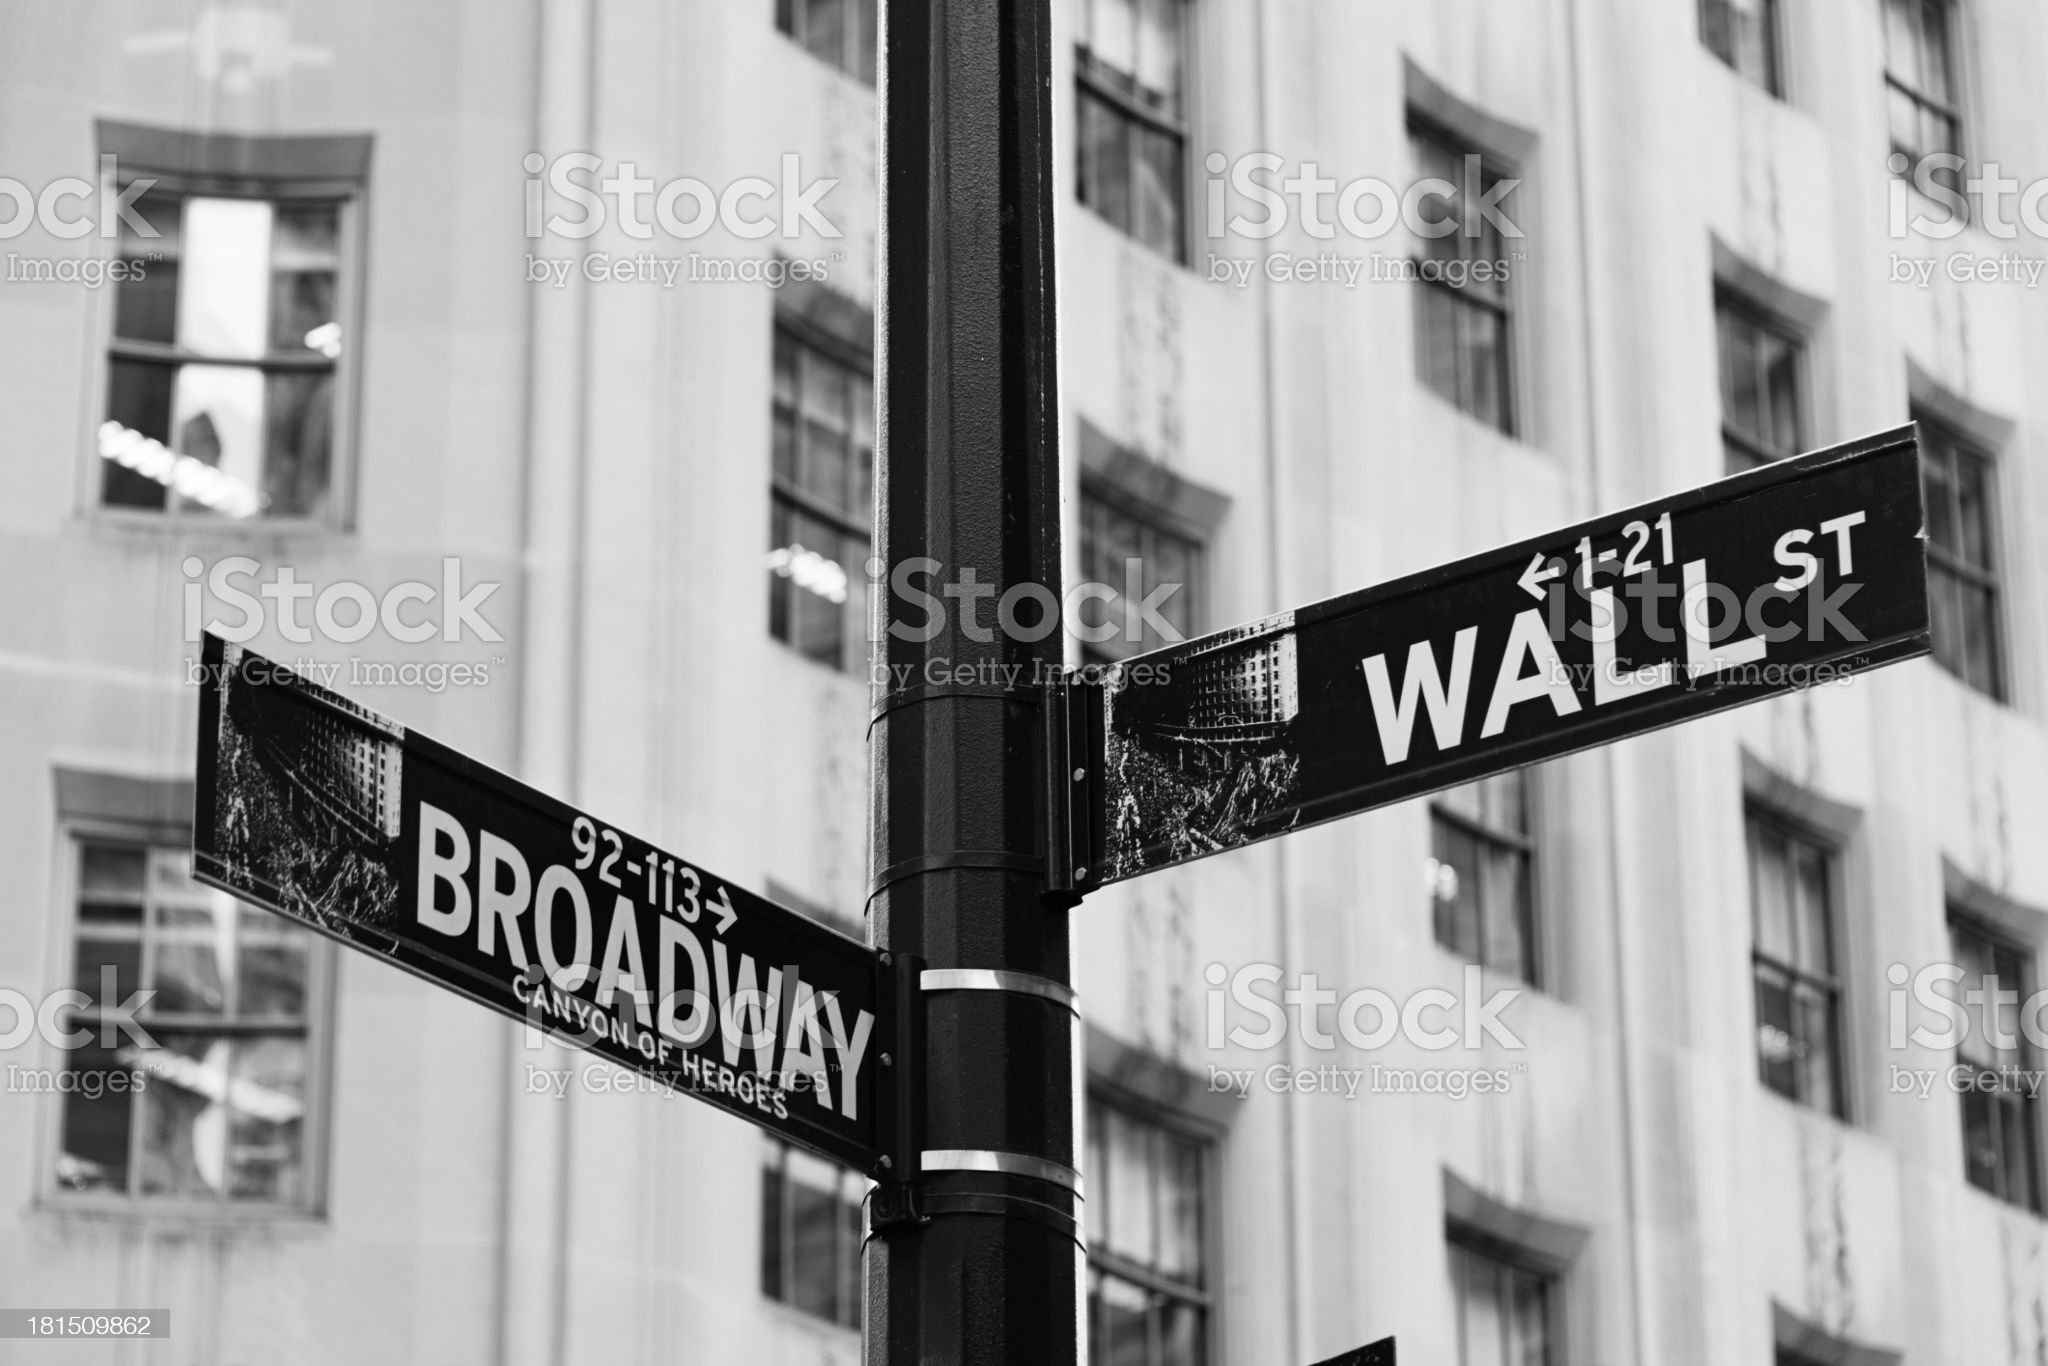 Wall Street and Broadway street sign, New York Financial Centre royalty-free stock photo